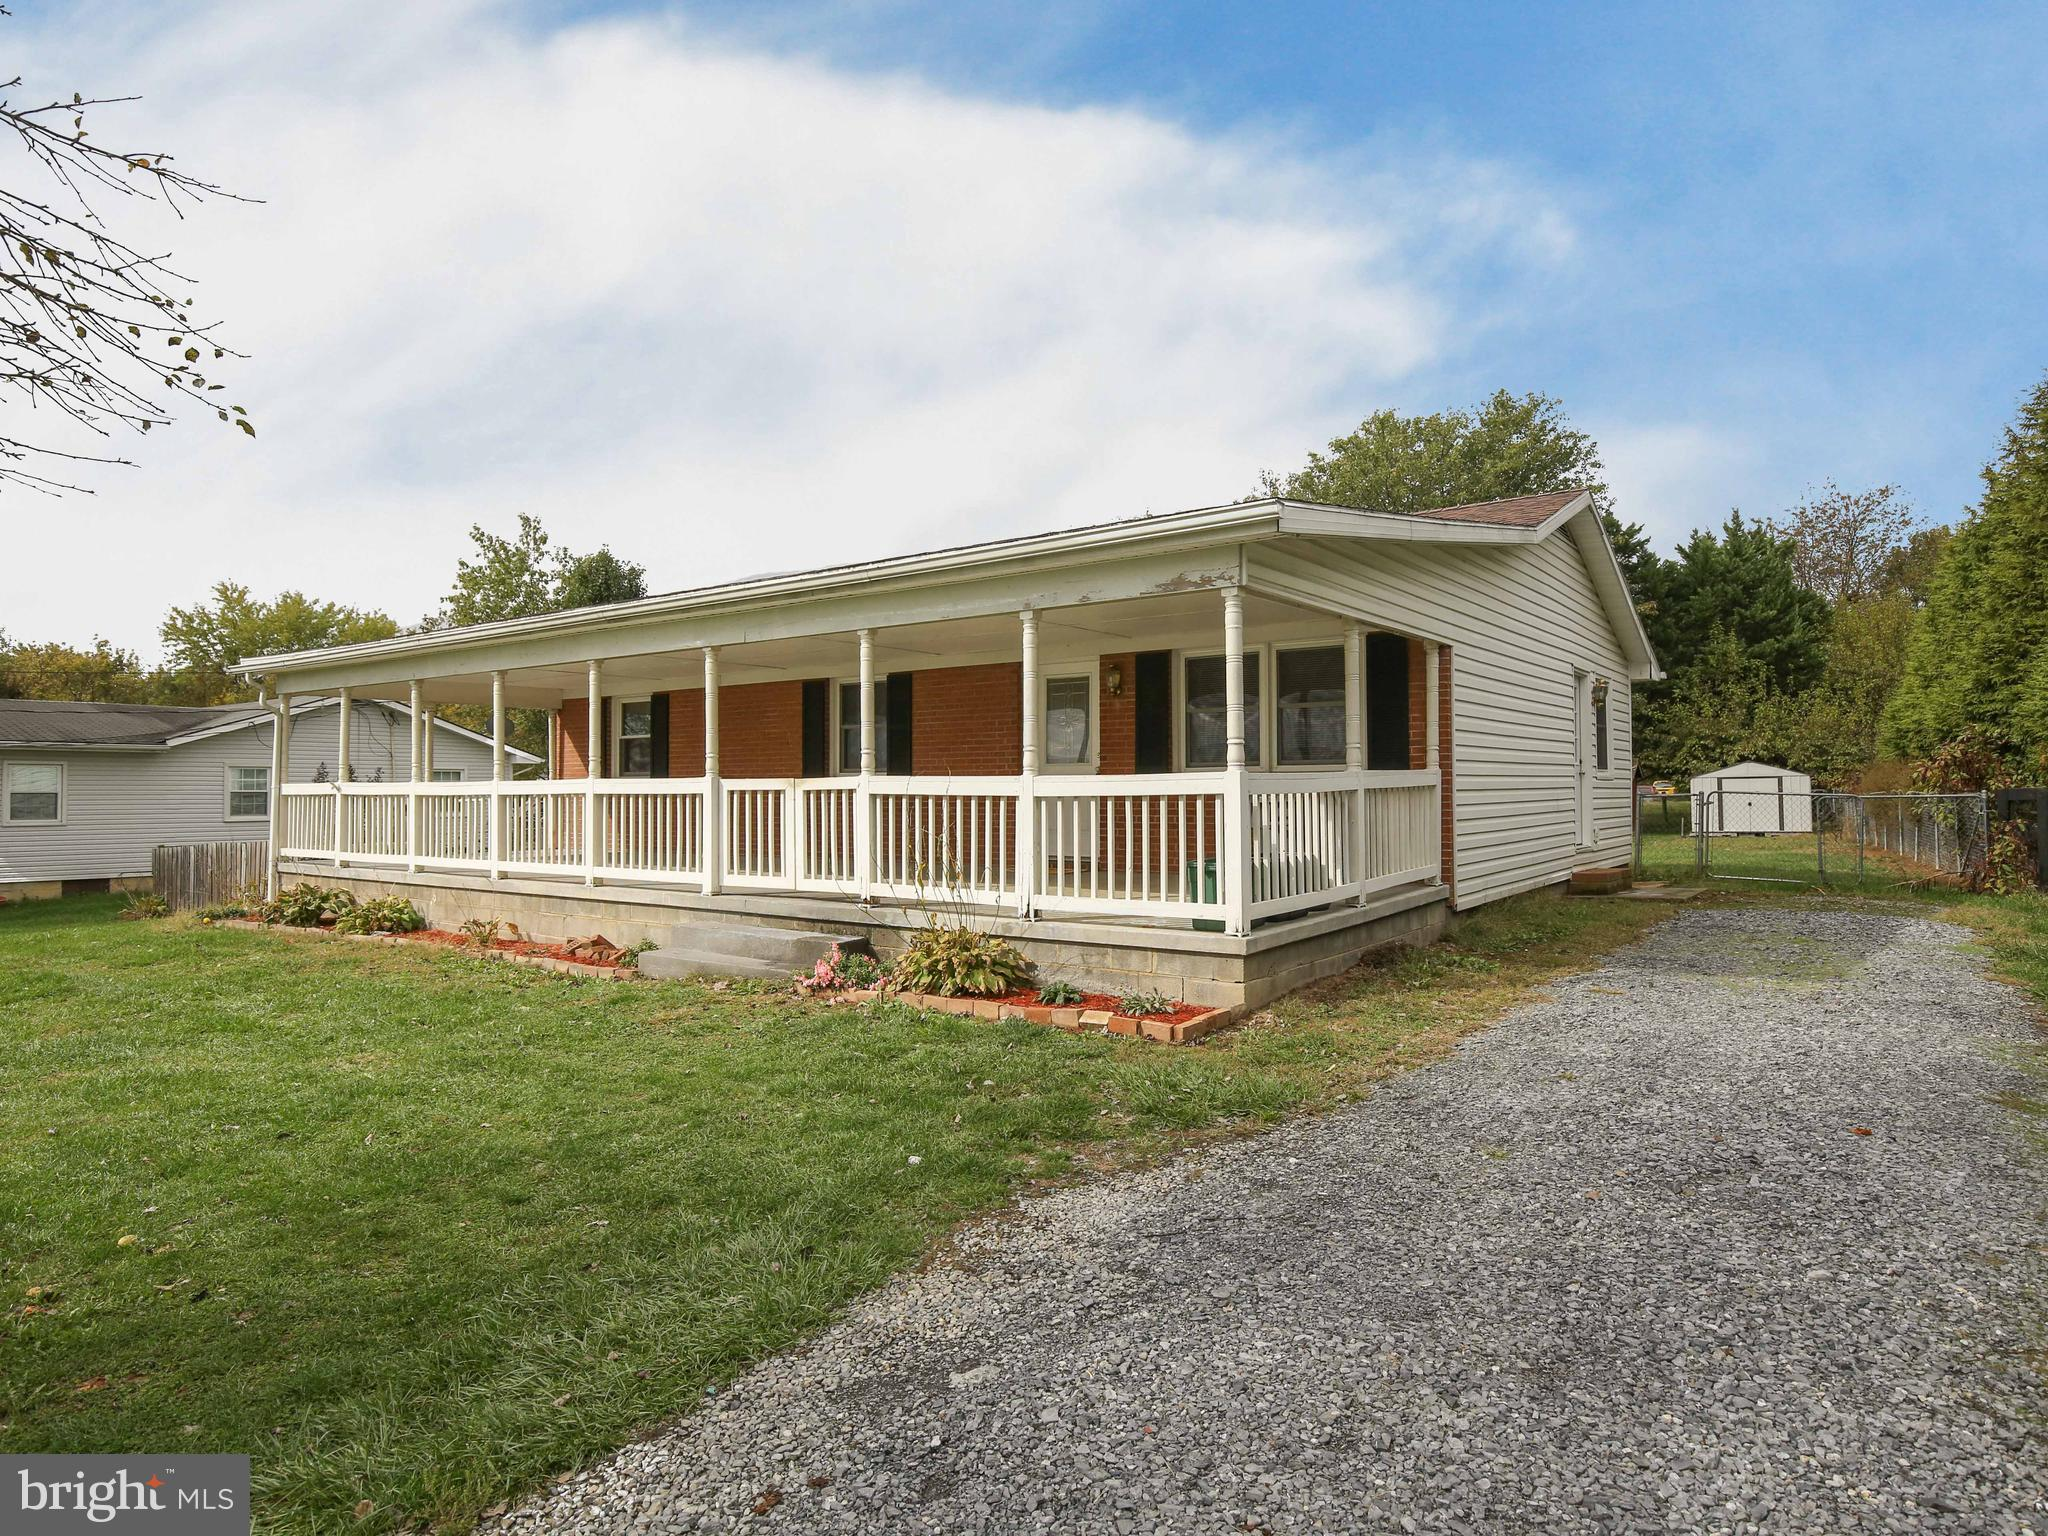 Enjoy living in a quiet country setting on 0.4 unrestricted acres. This rancher offers one-level liv